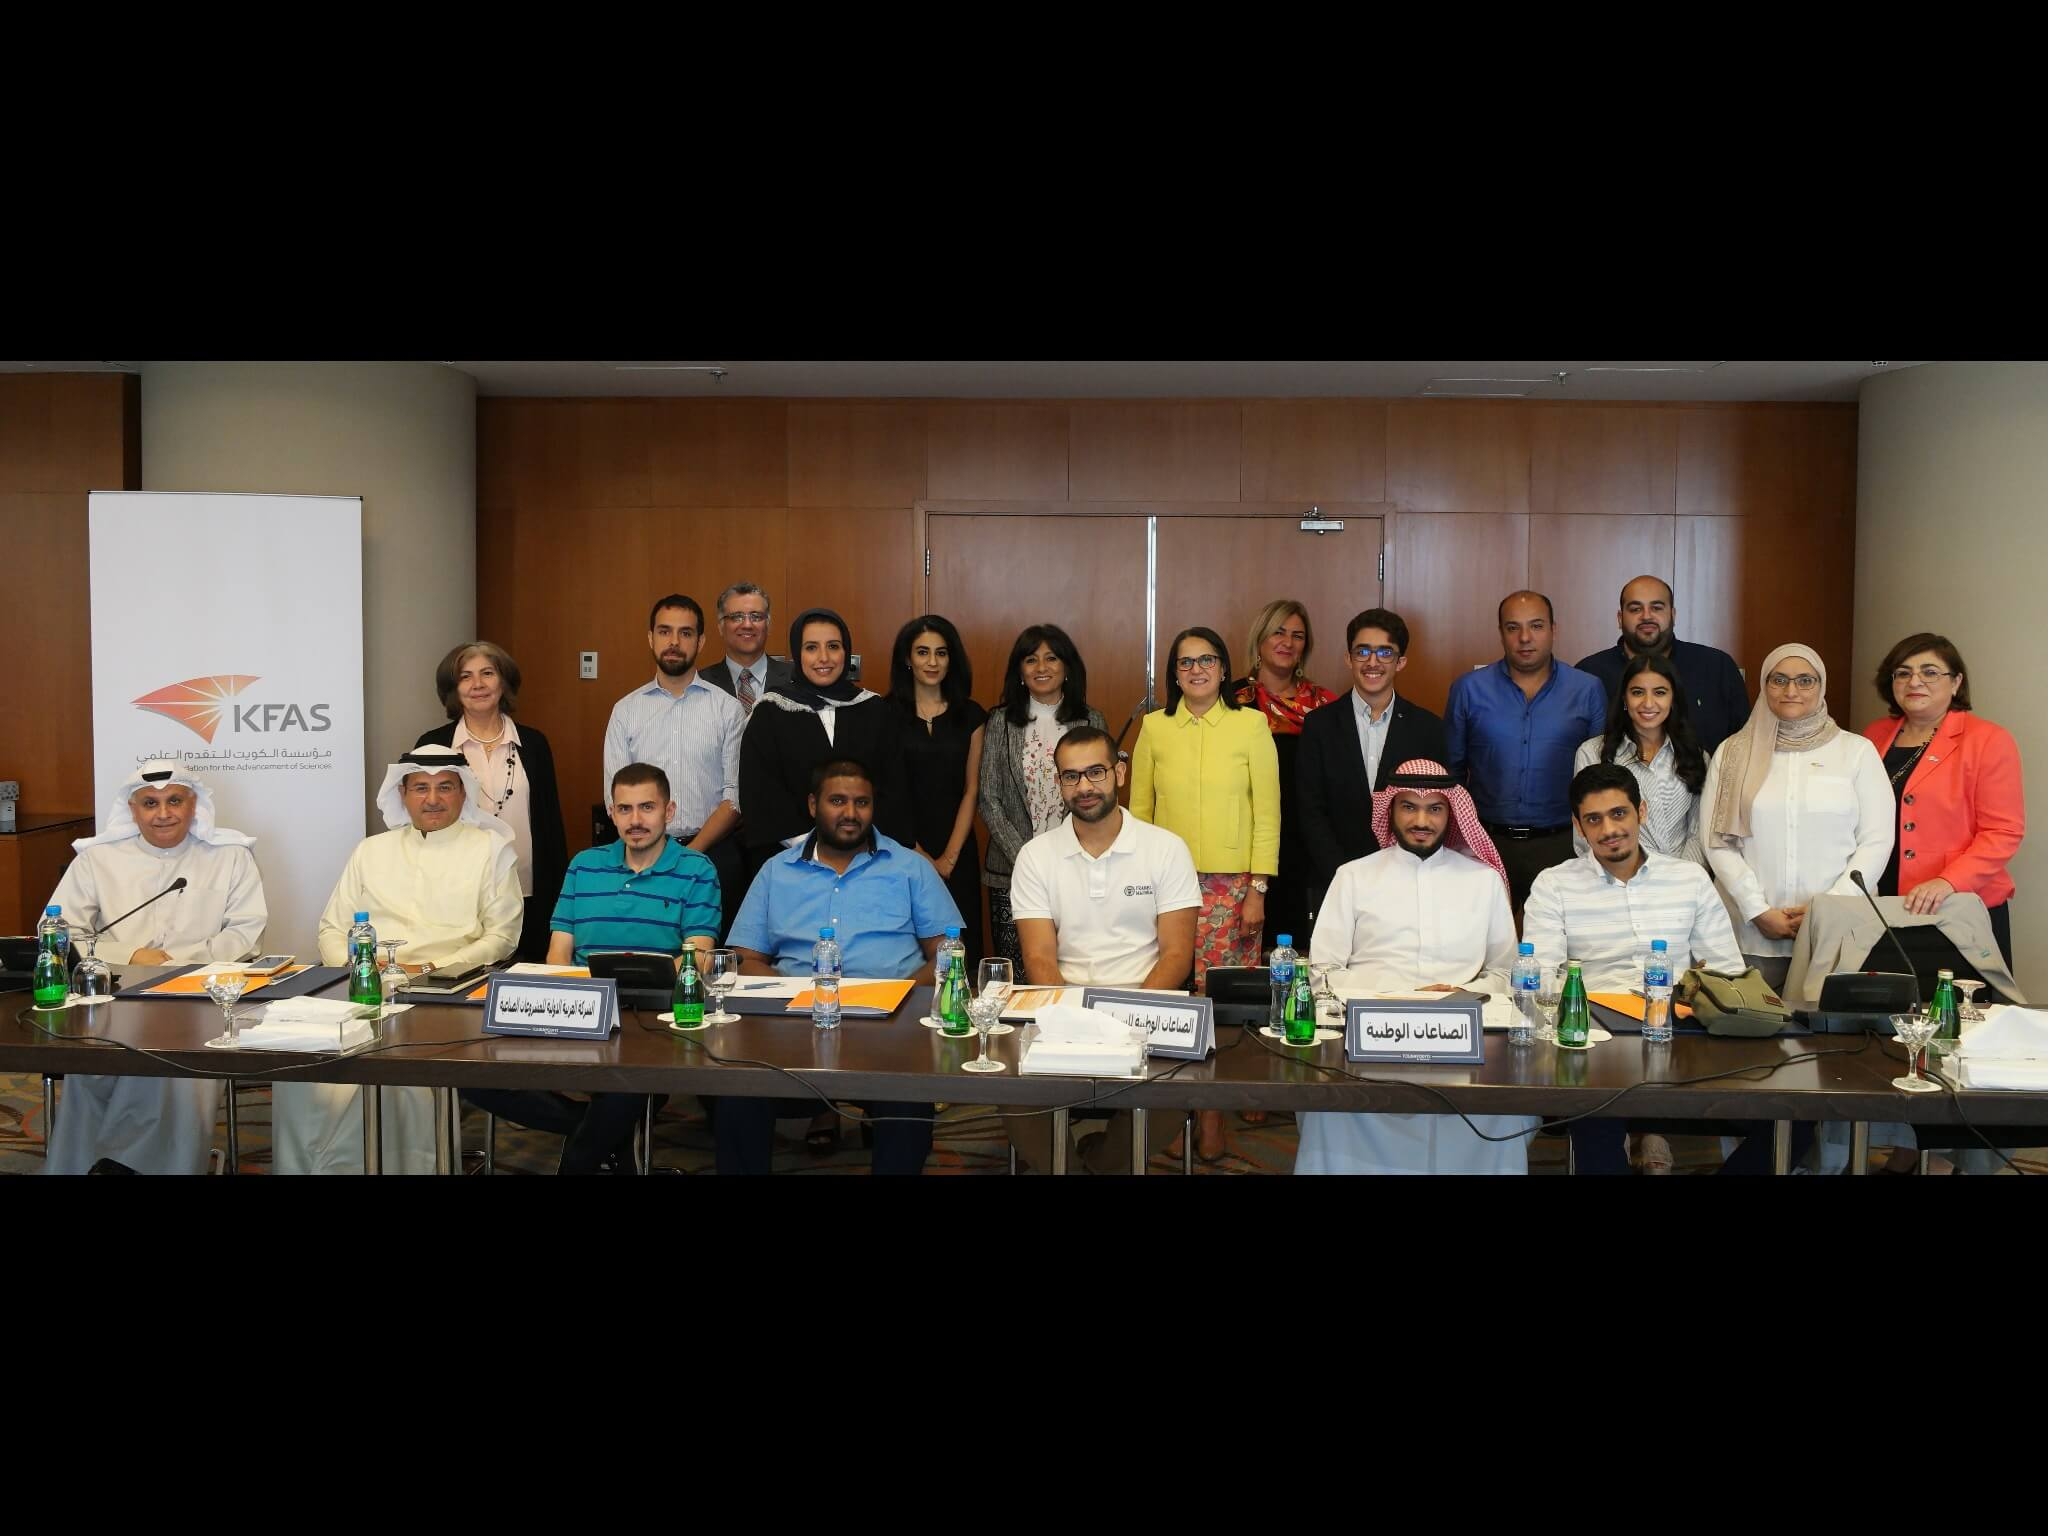 KFAS organized a presentation on a breakthrough technology in